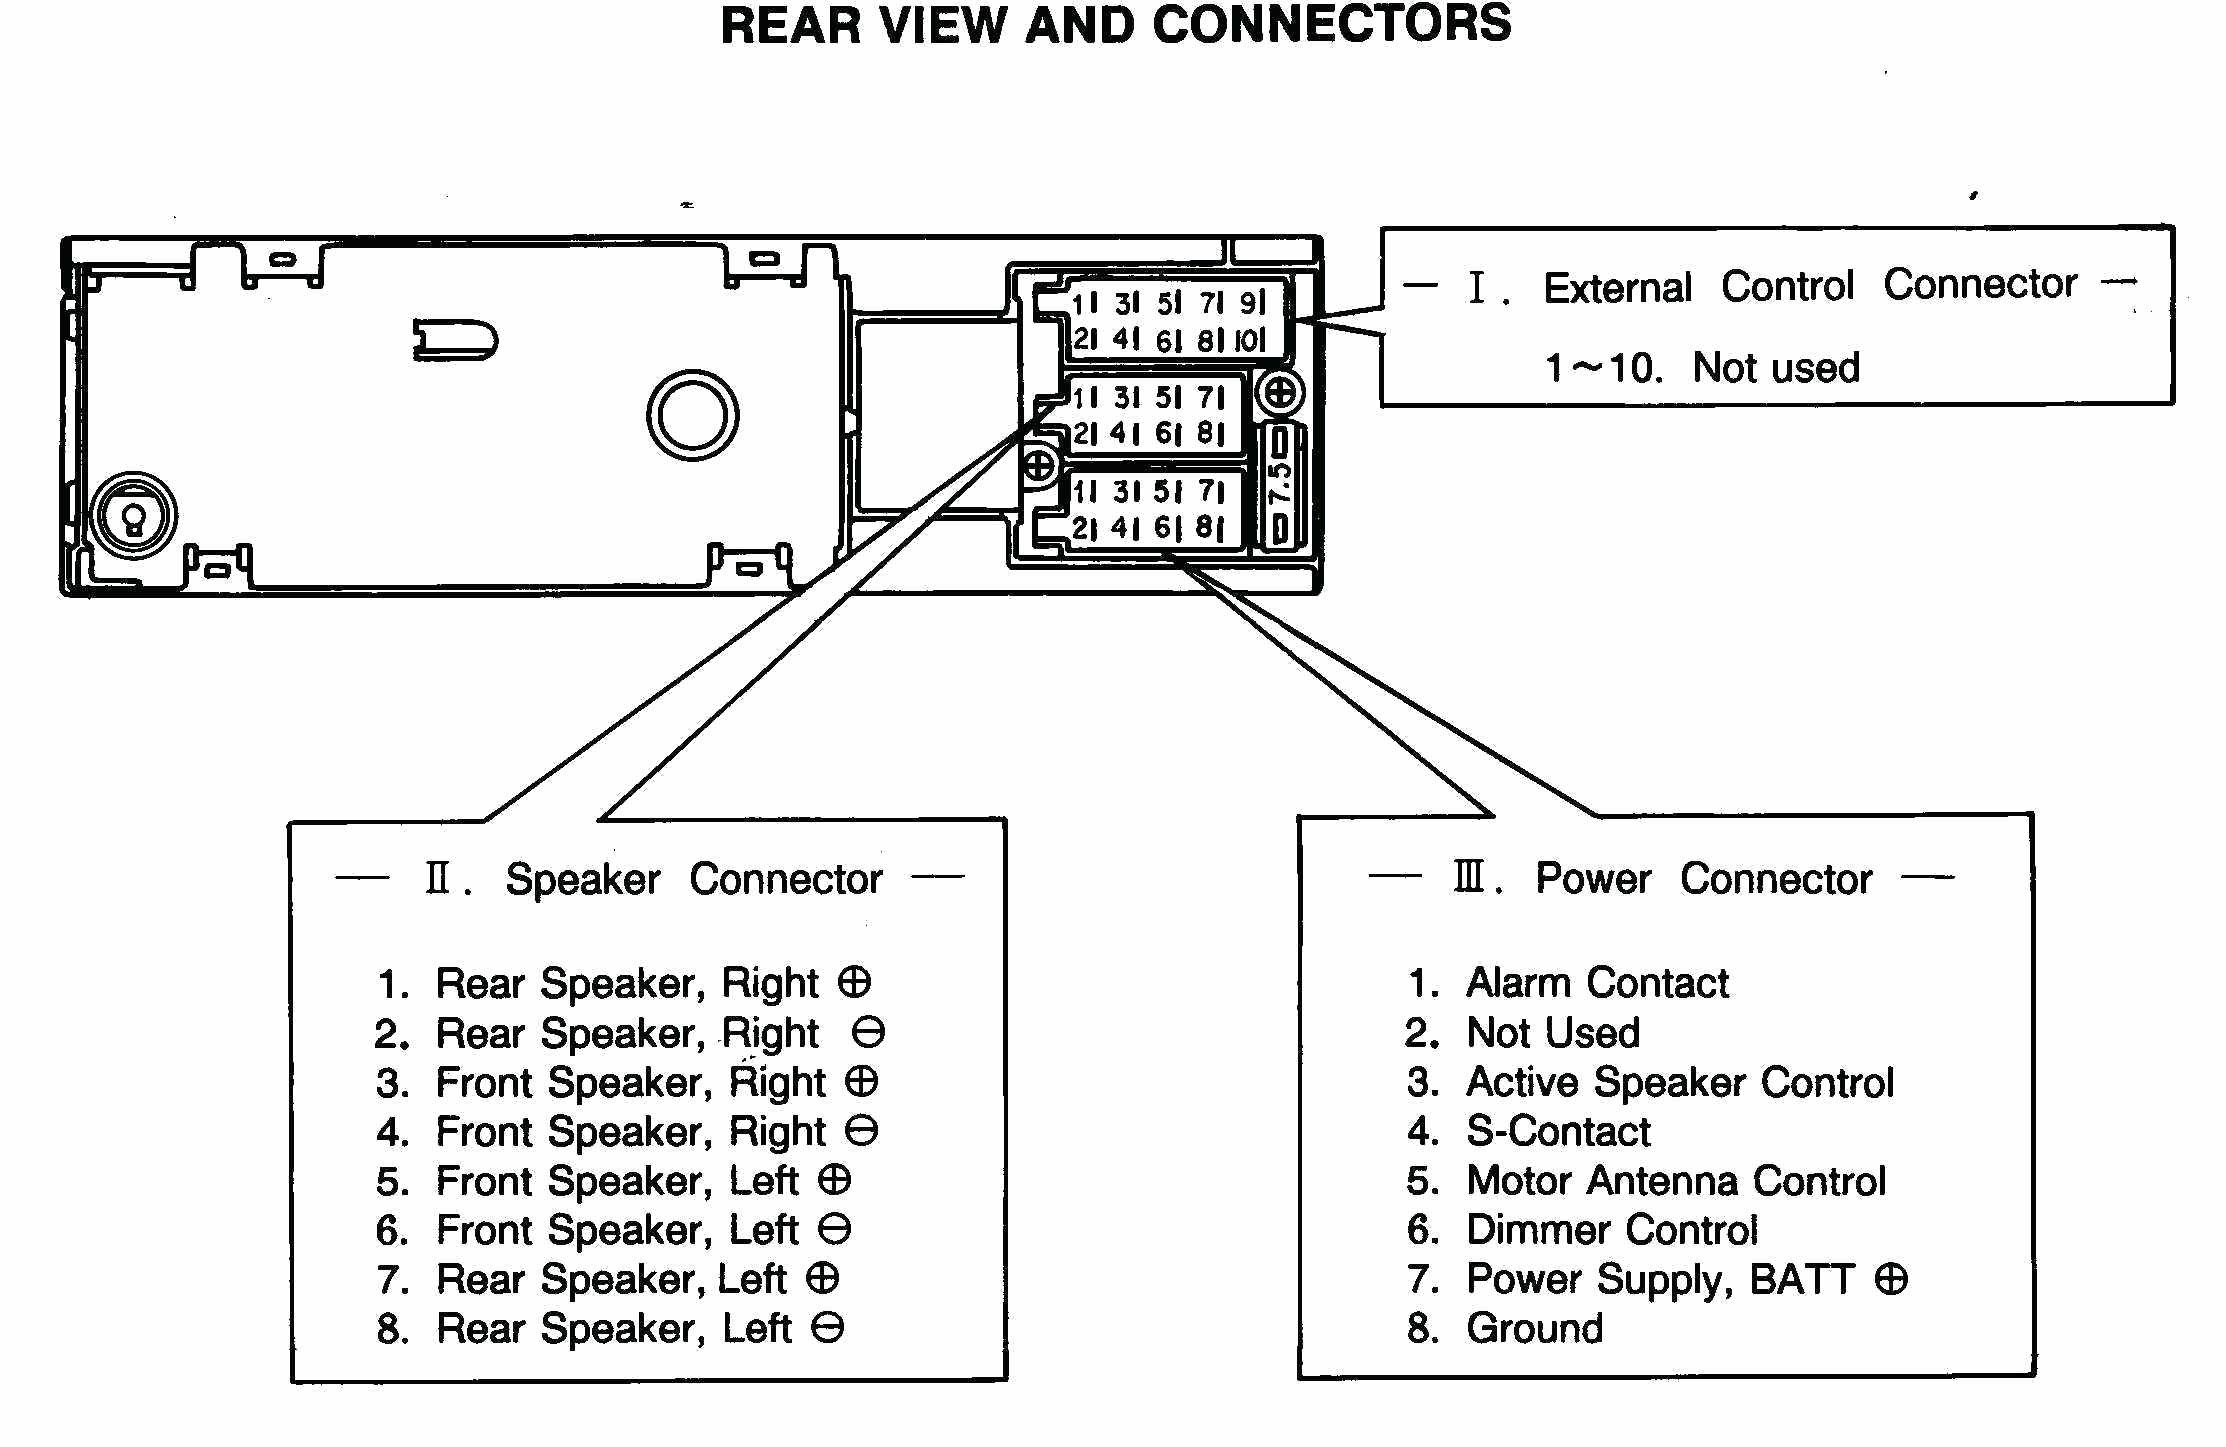 res radio wiring diagram Download-Bmw F20 Audio Wiring Diagram Best Bmw Wiring Diagrams E90 Best Bmw Stereo Wiring Diagram Z4 14-j